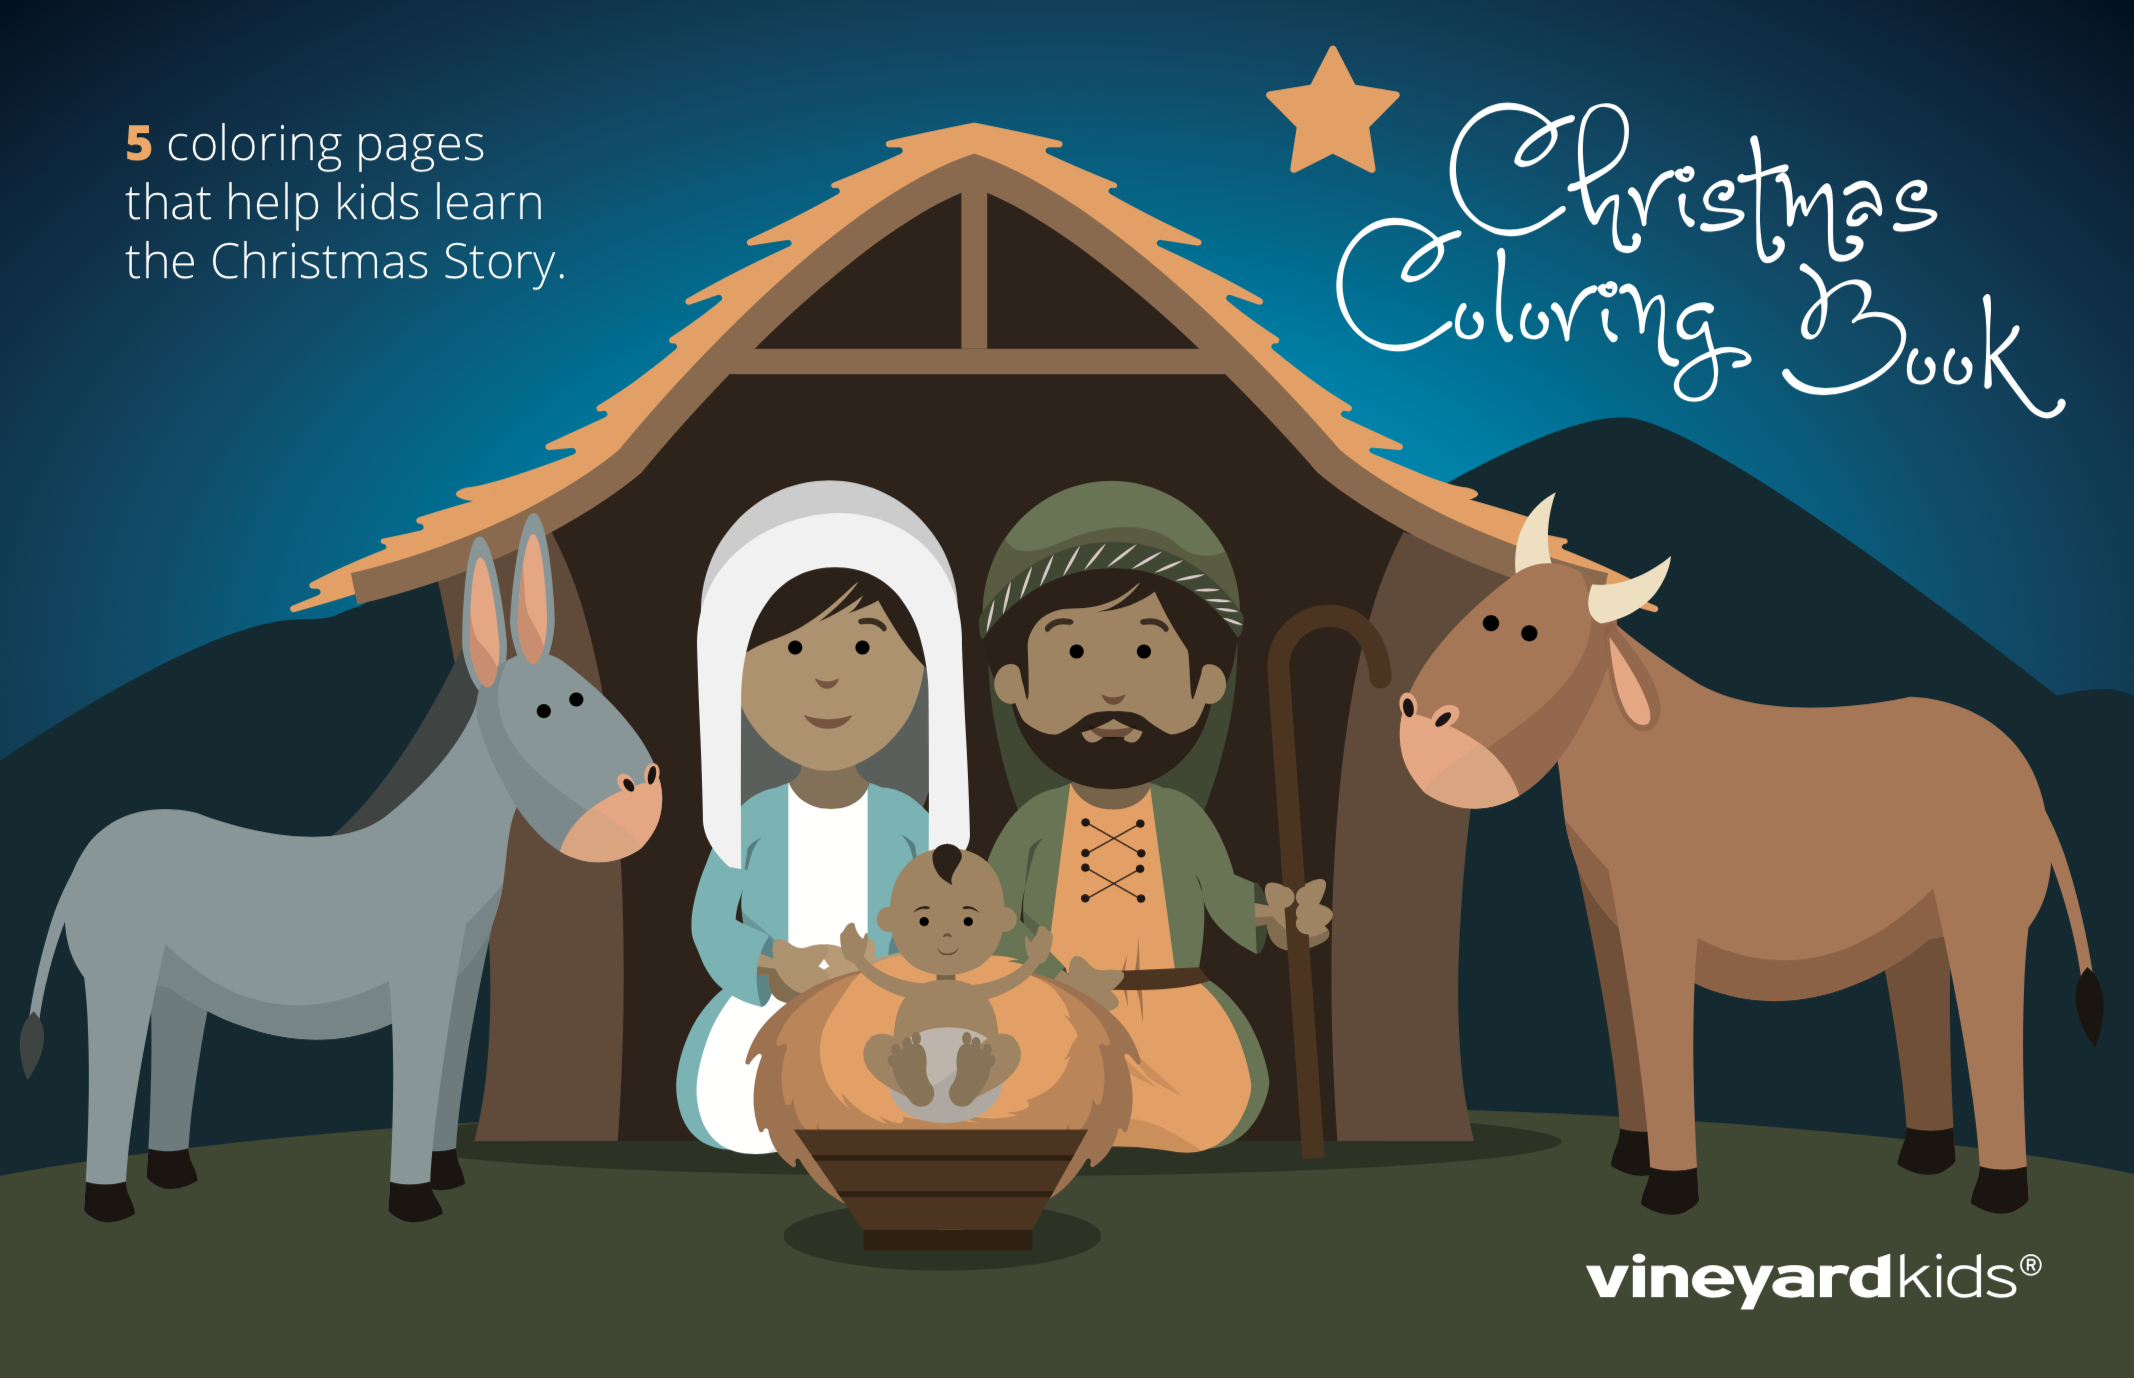 - New Kids Christmas Coloring Pages – Just Released! - Vineyard